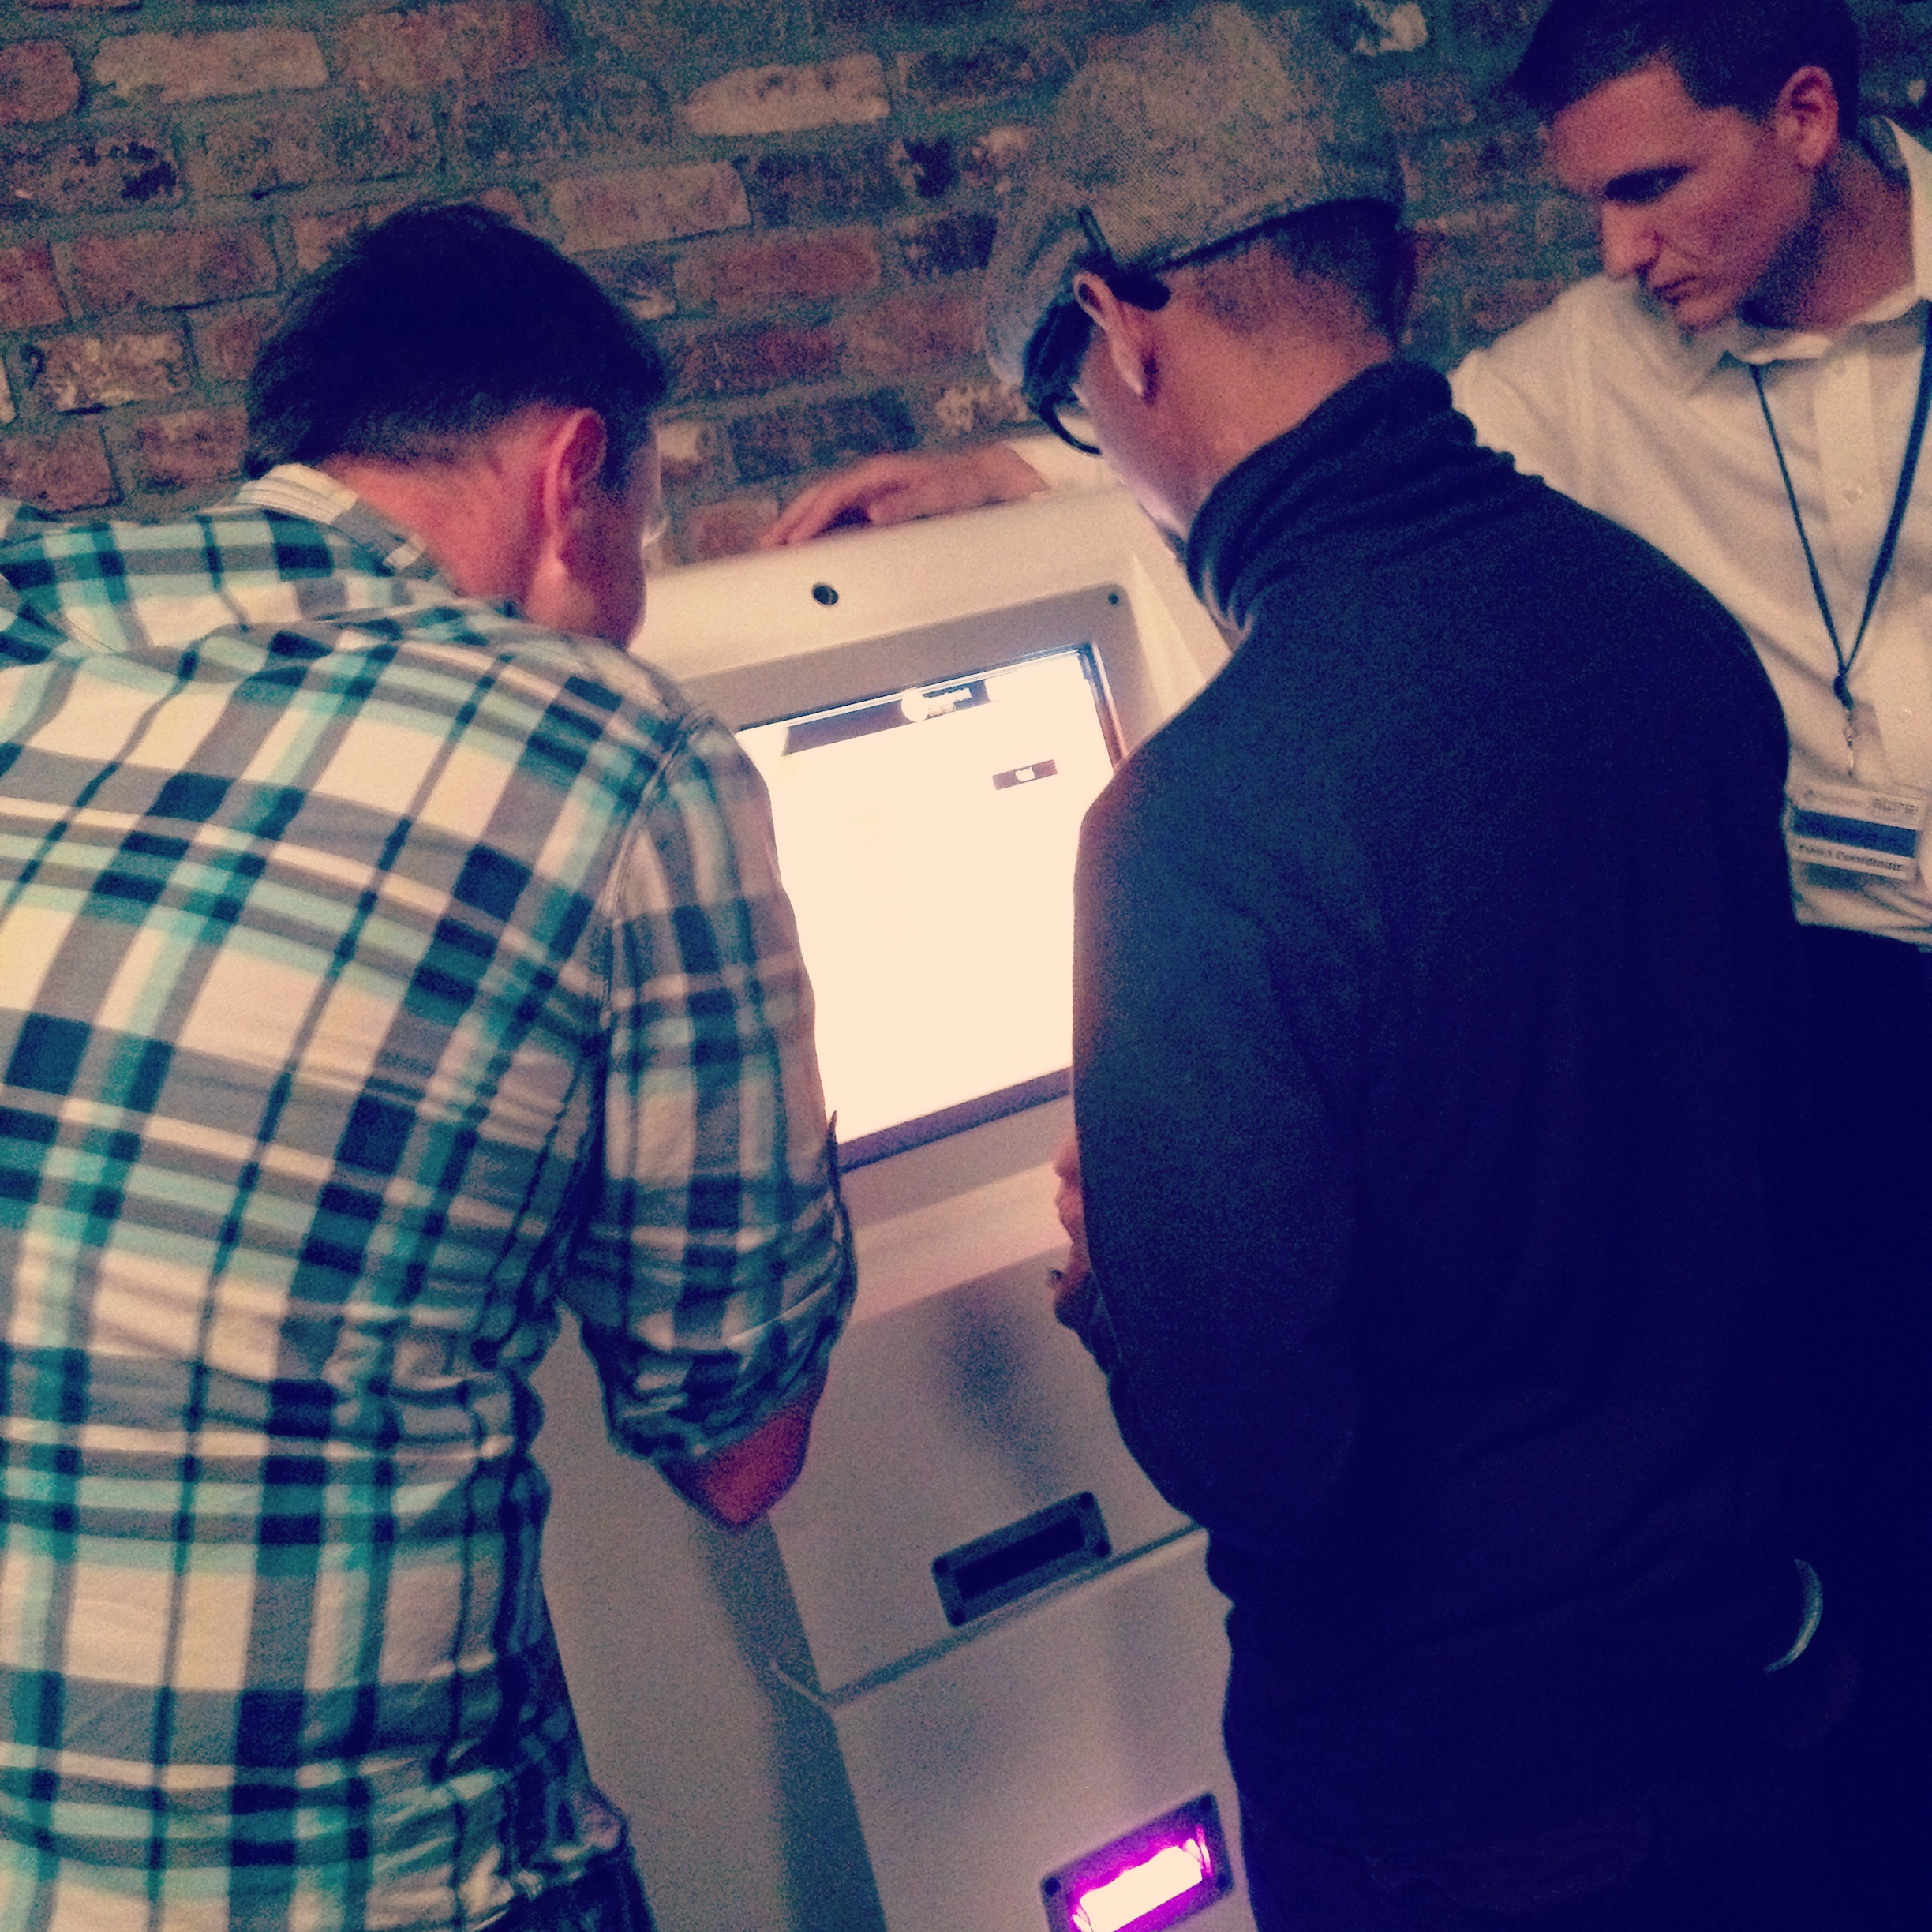 Exchanging cash for Bitcoins using my smart-phone at the unveiling of a Bitcoin ATM.